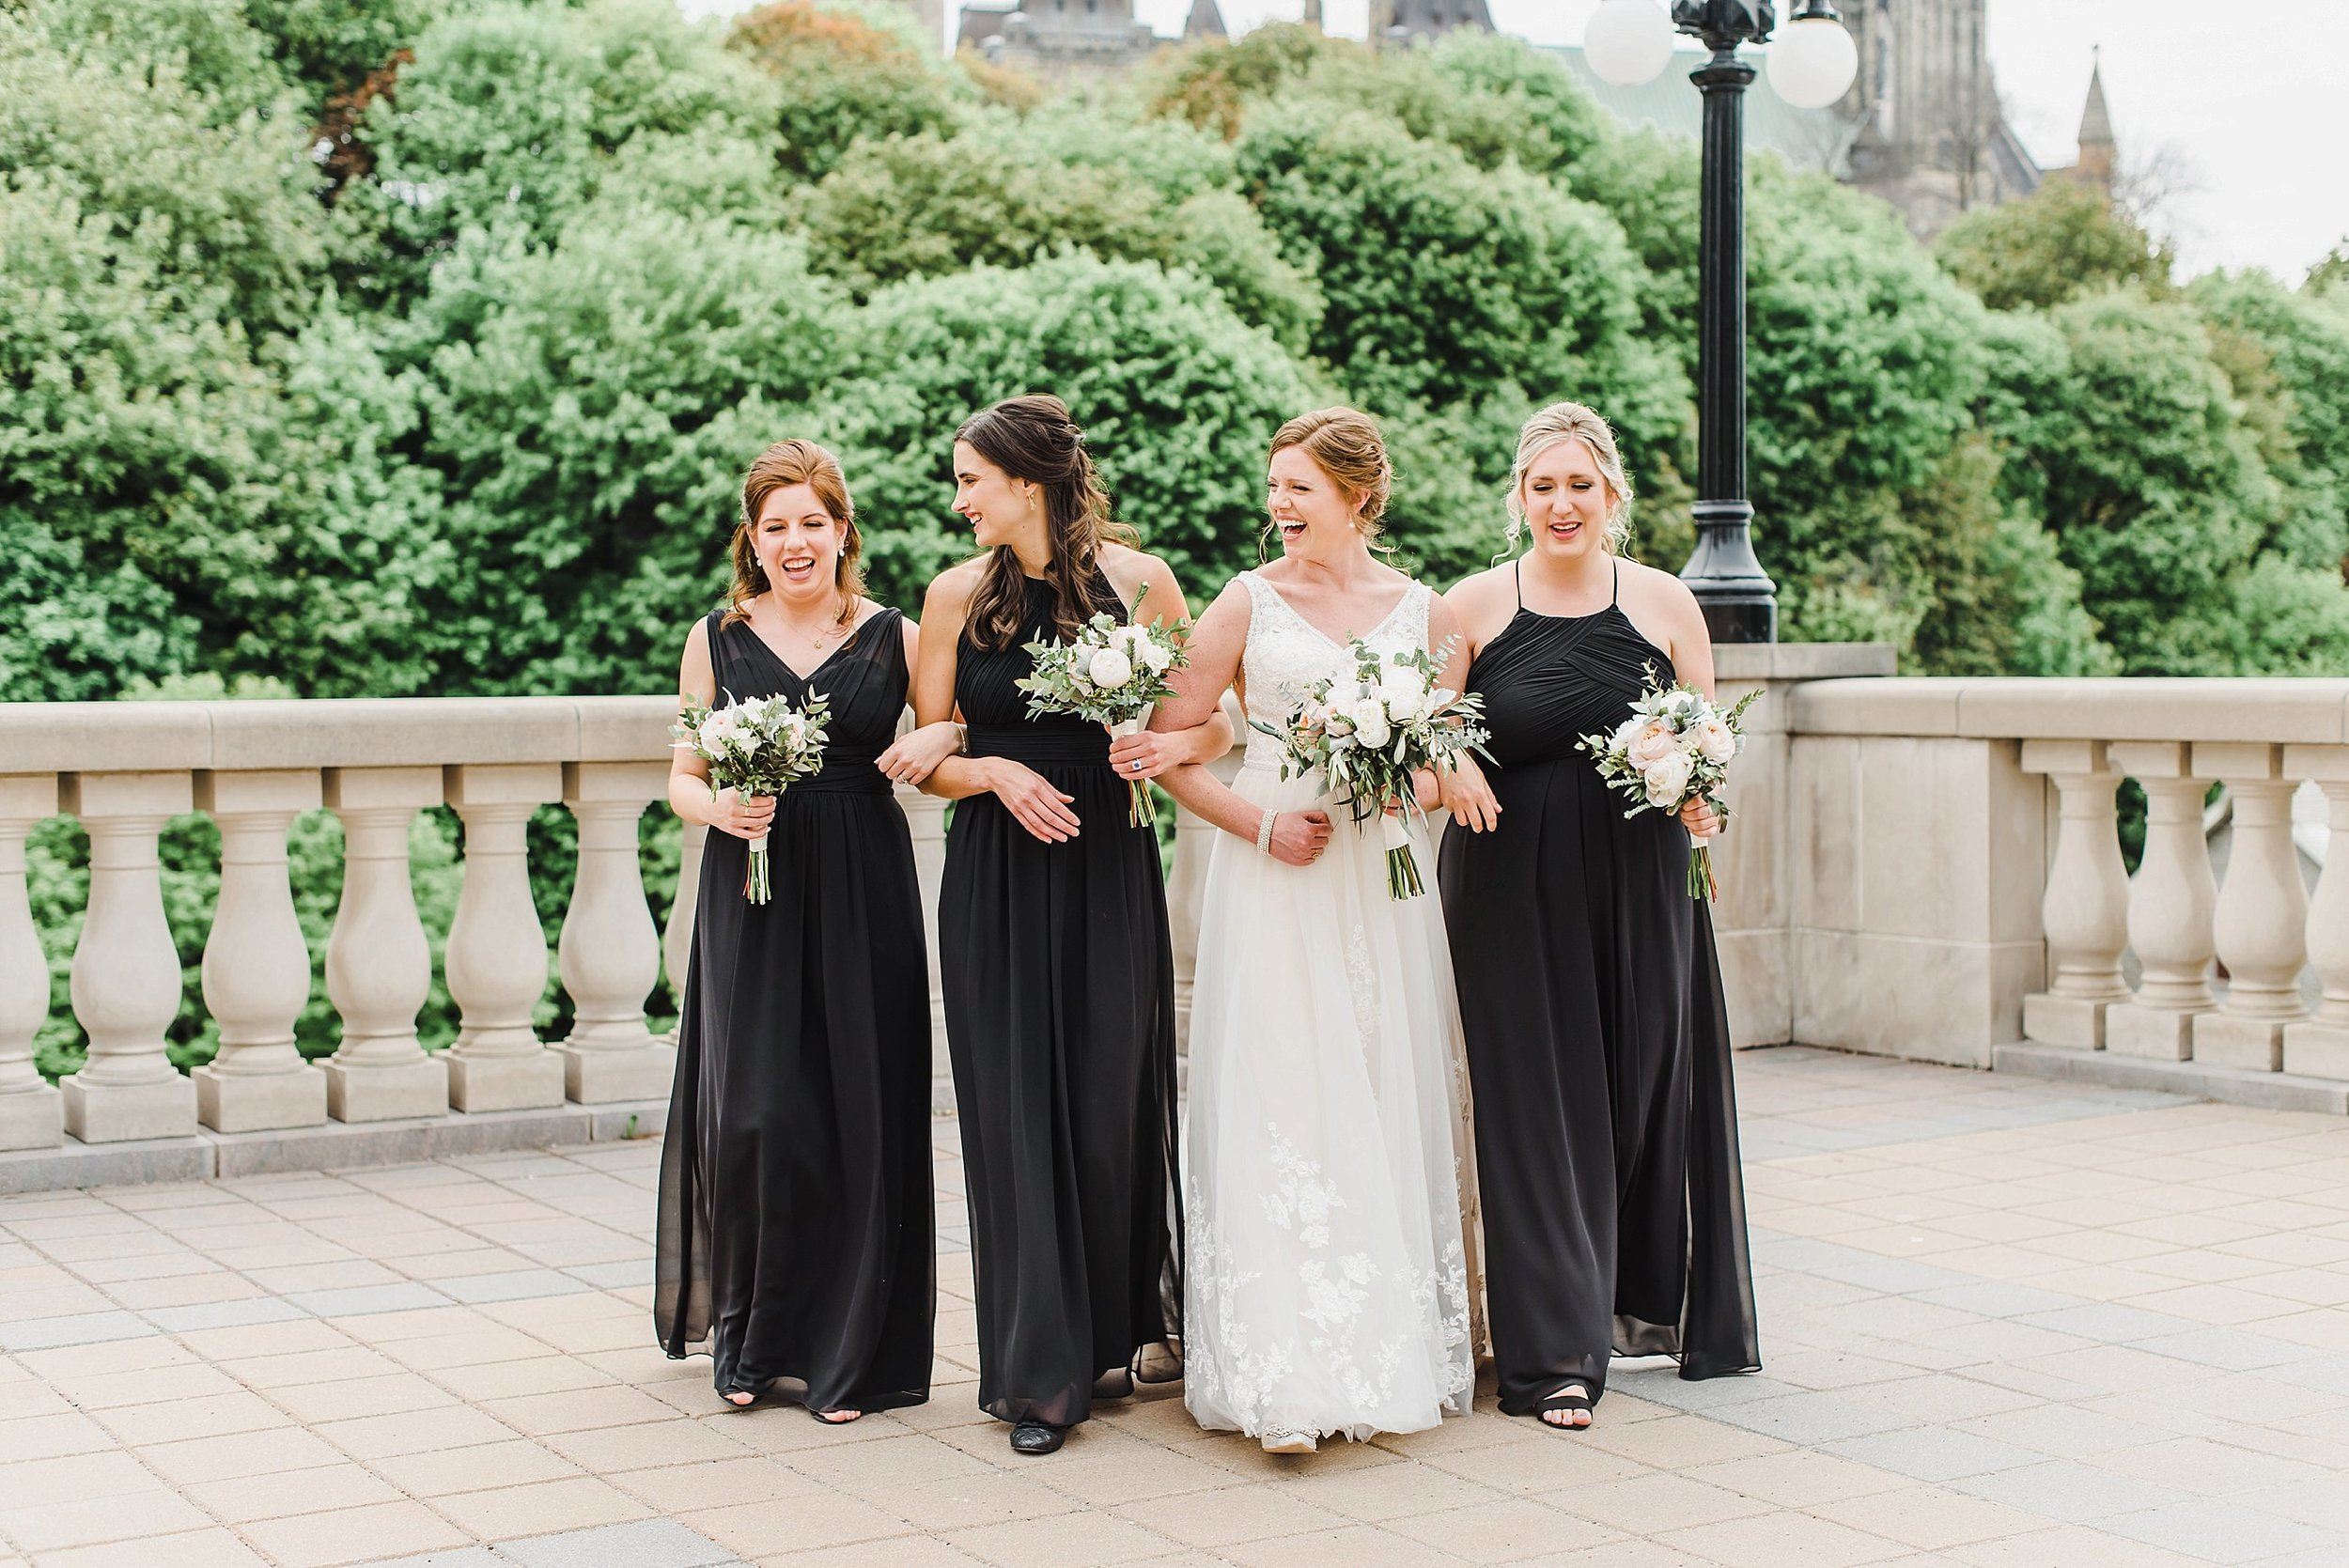 light airy indie fine art ottawa wedding photographer | Ali and Batoul Photography_0358.jpg